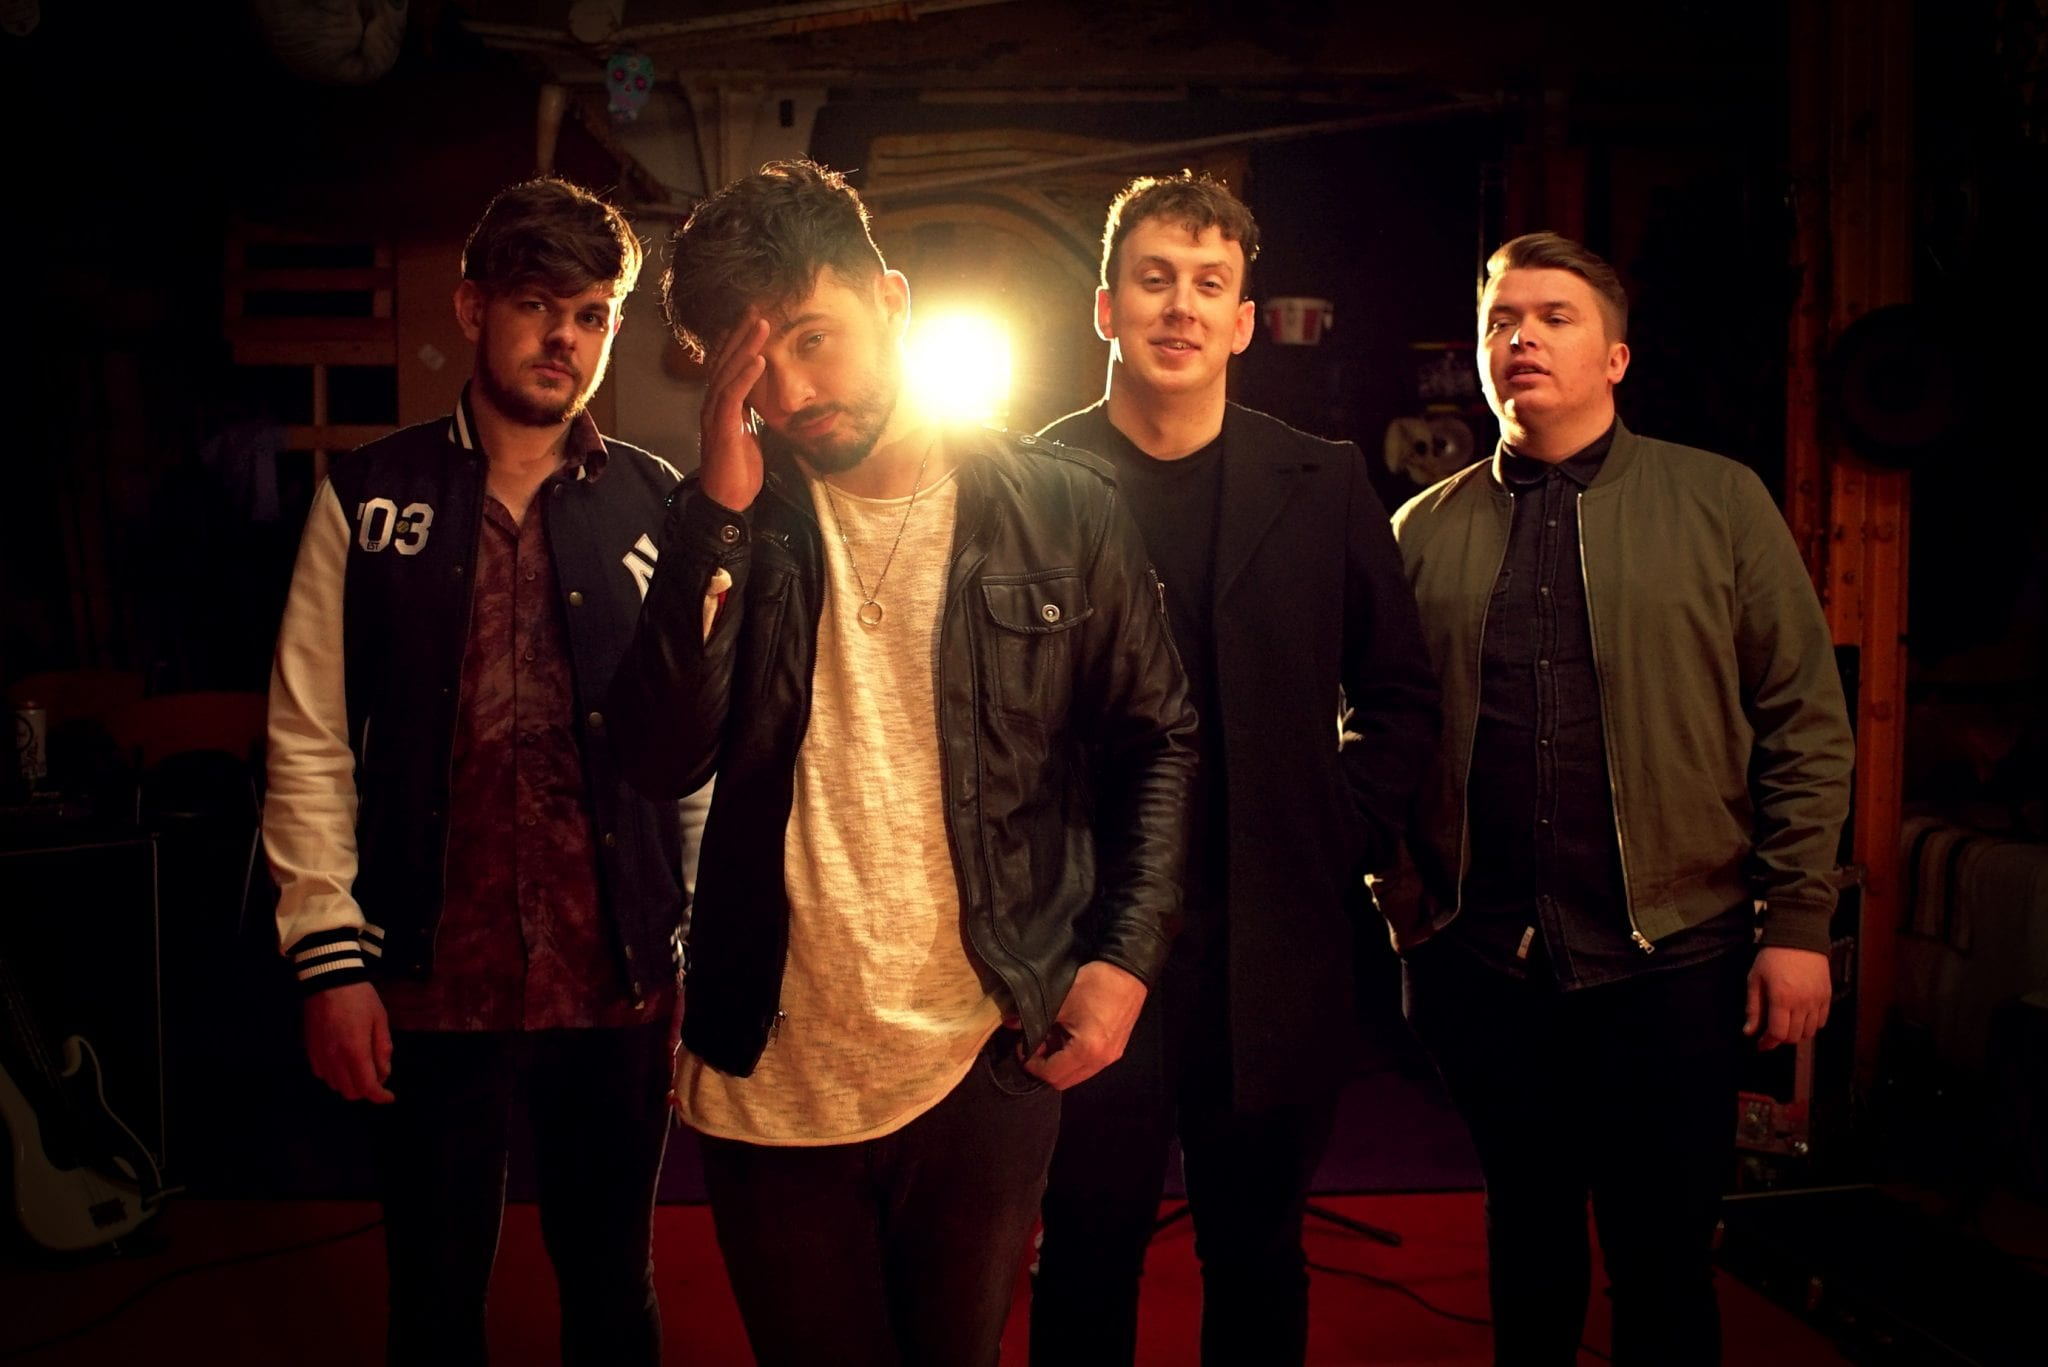 NEW YORK TOURISTS TO OPEN FOR KAISER CHIEFS AT HOMECOMING GIG